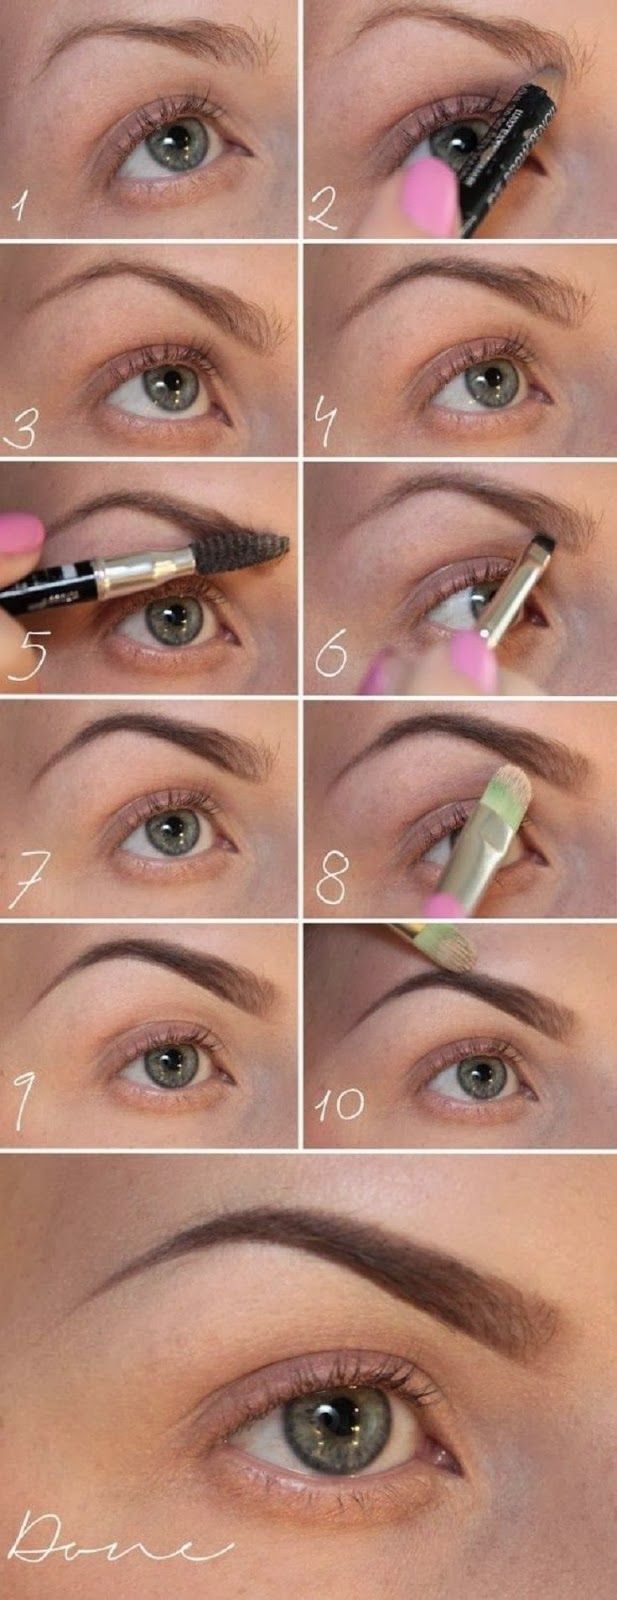 Top 10 Tips for Perfect Make-Up - Top Inspired